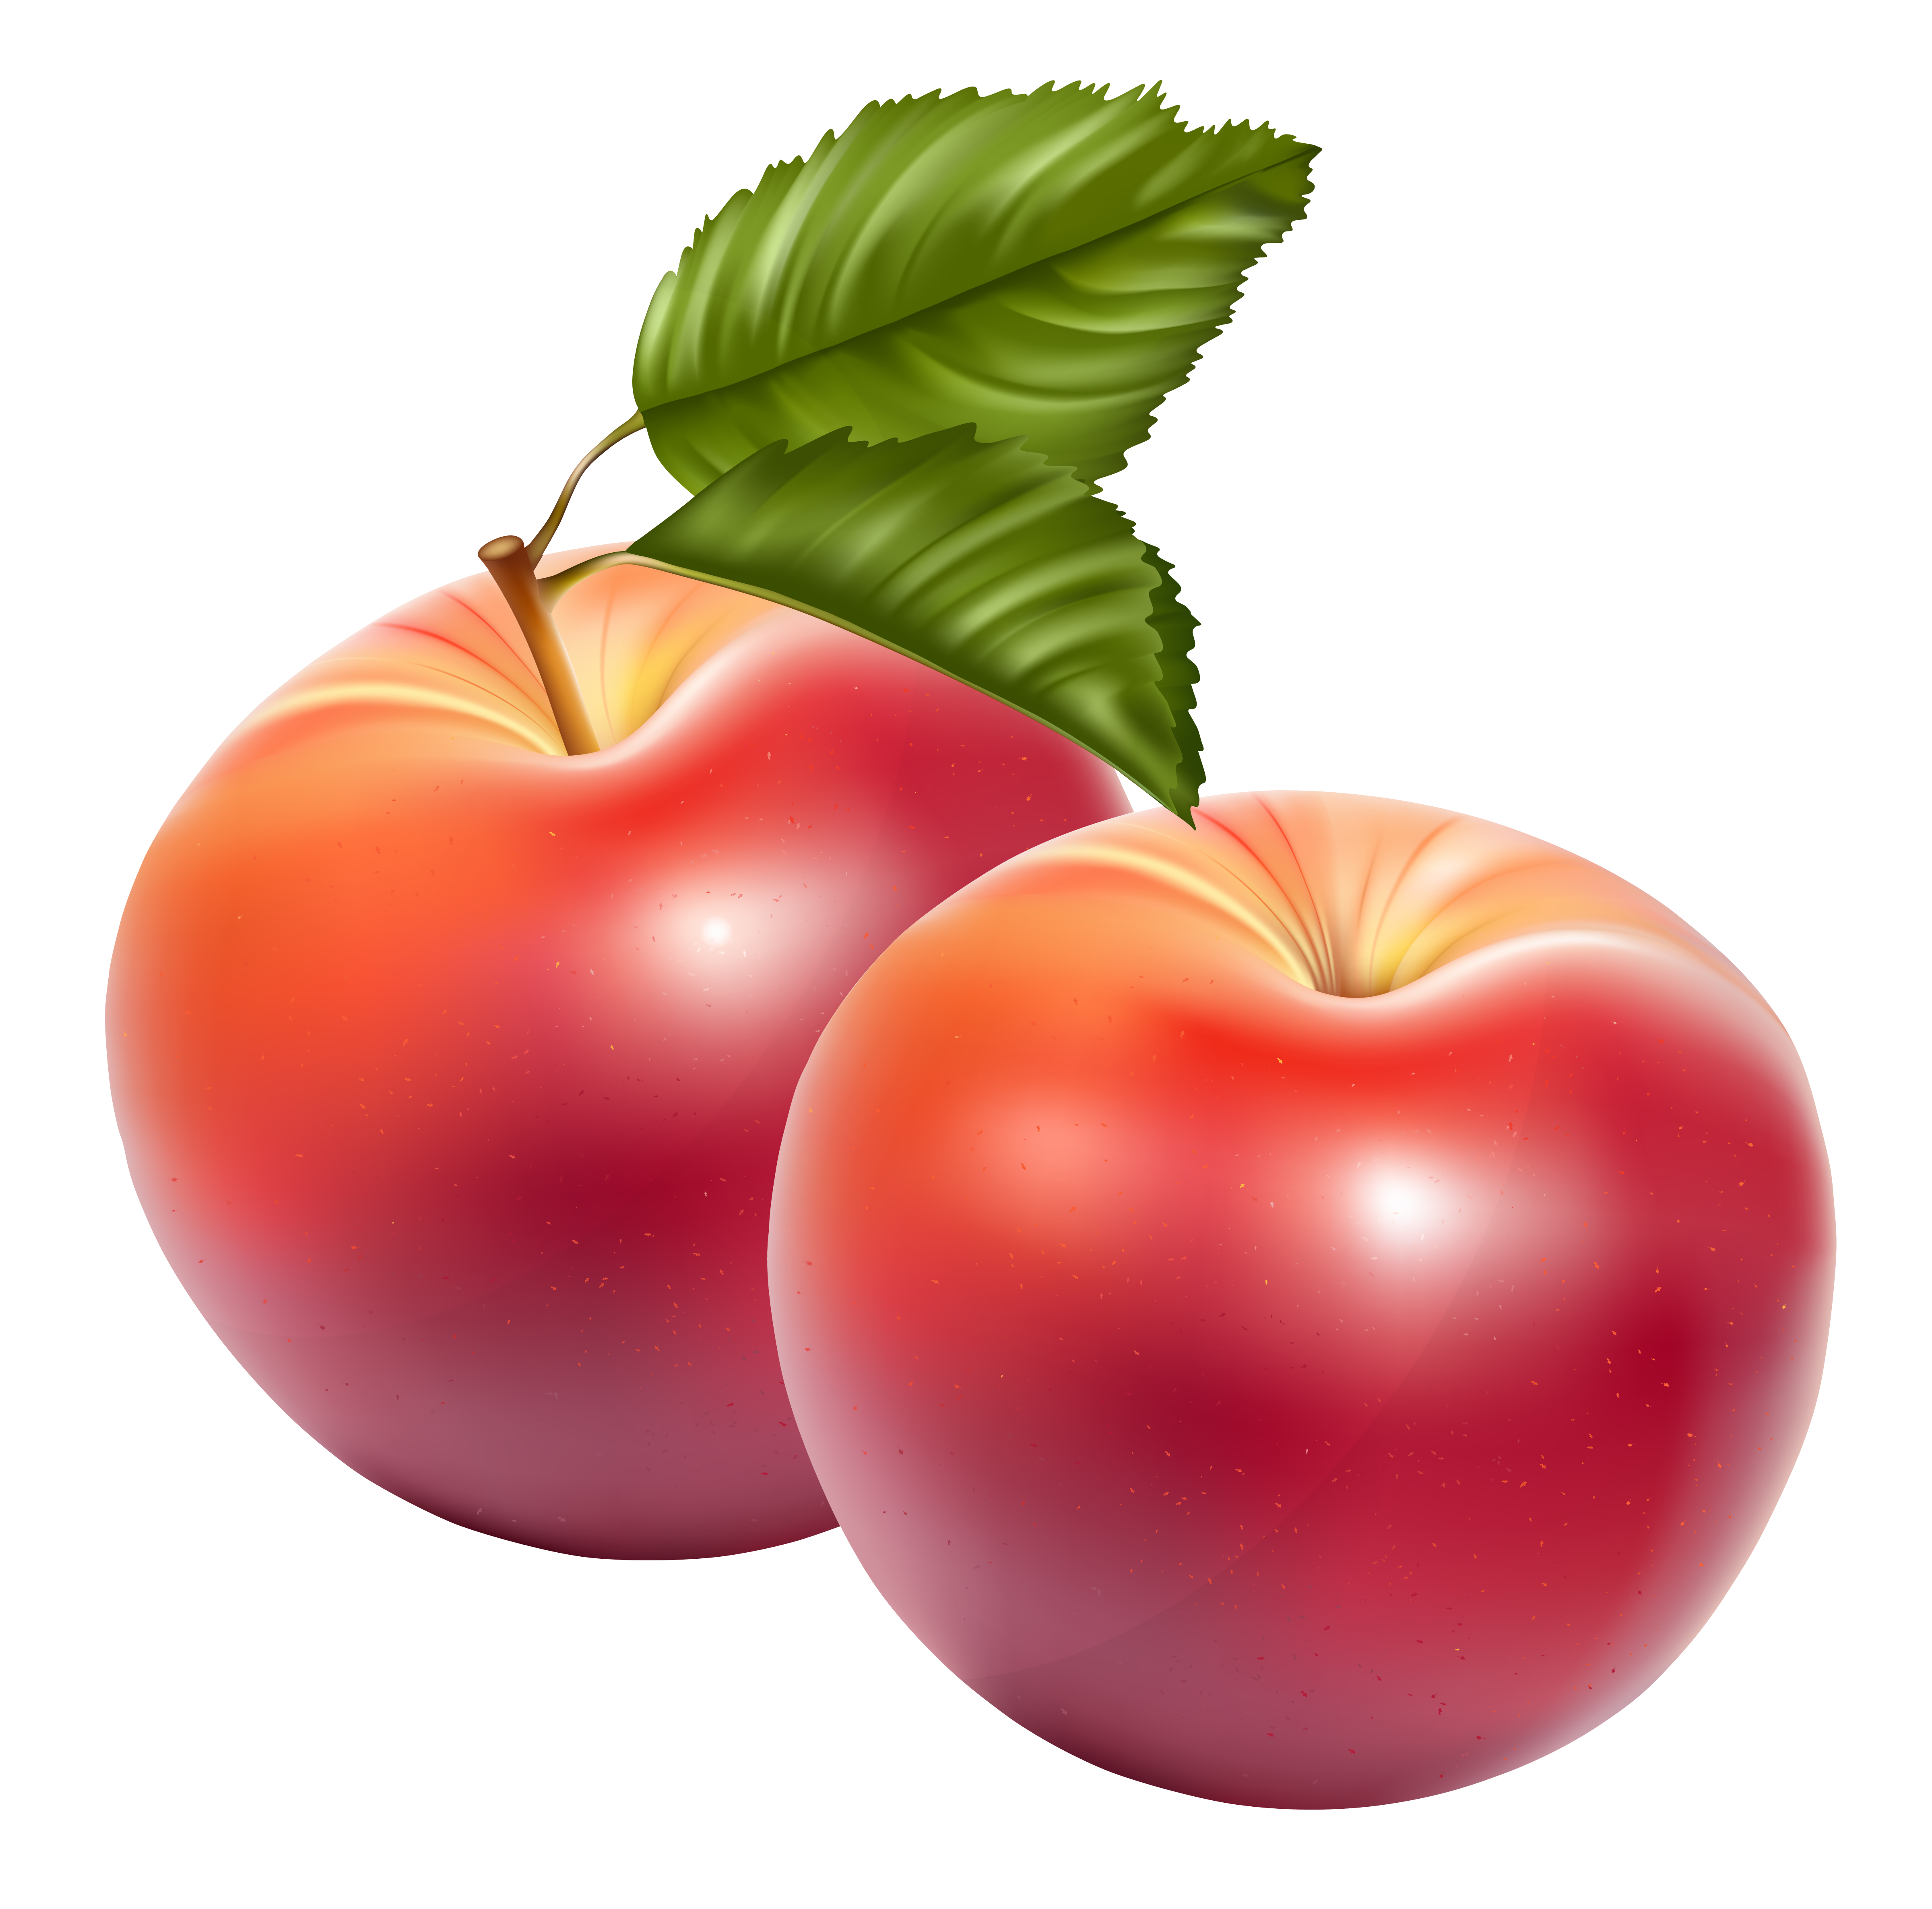 Apple Fruit PNG Image - Fruits PNG HD